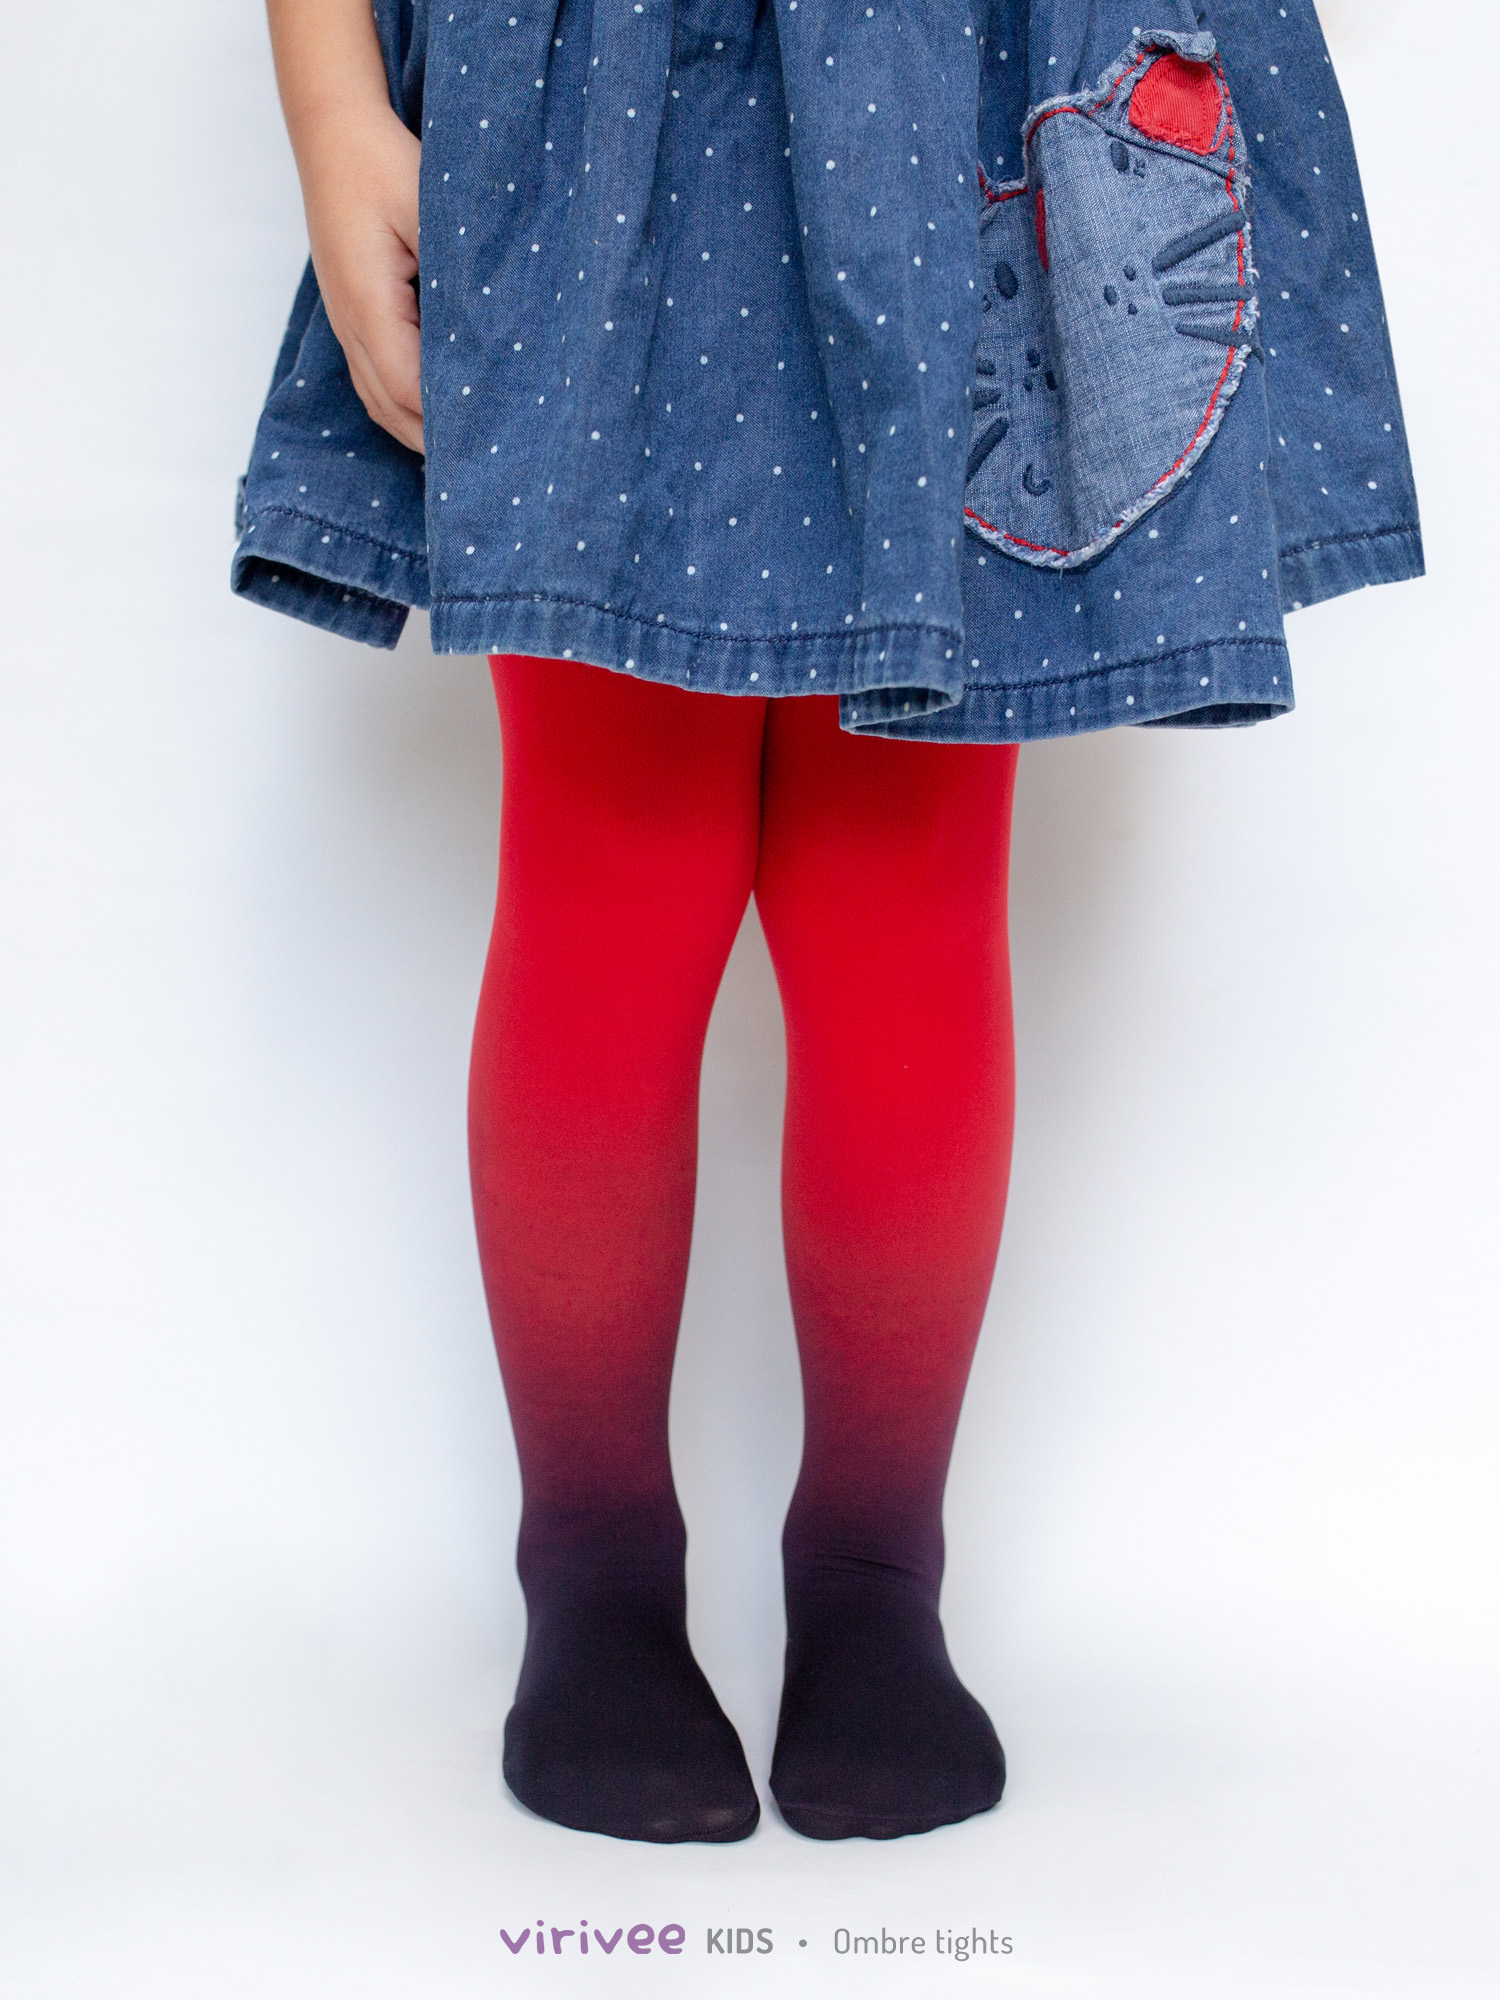 Girls Ombre Tights Black-red